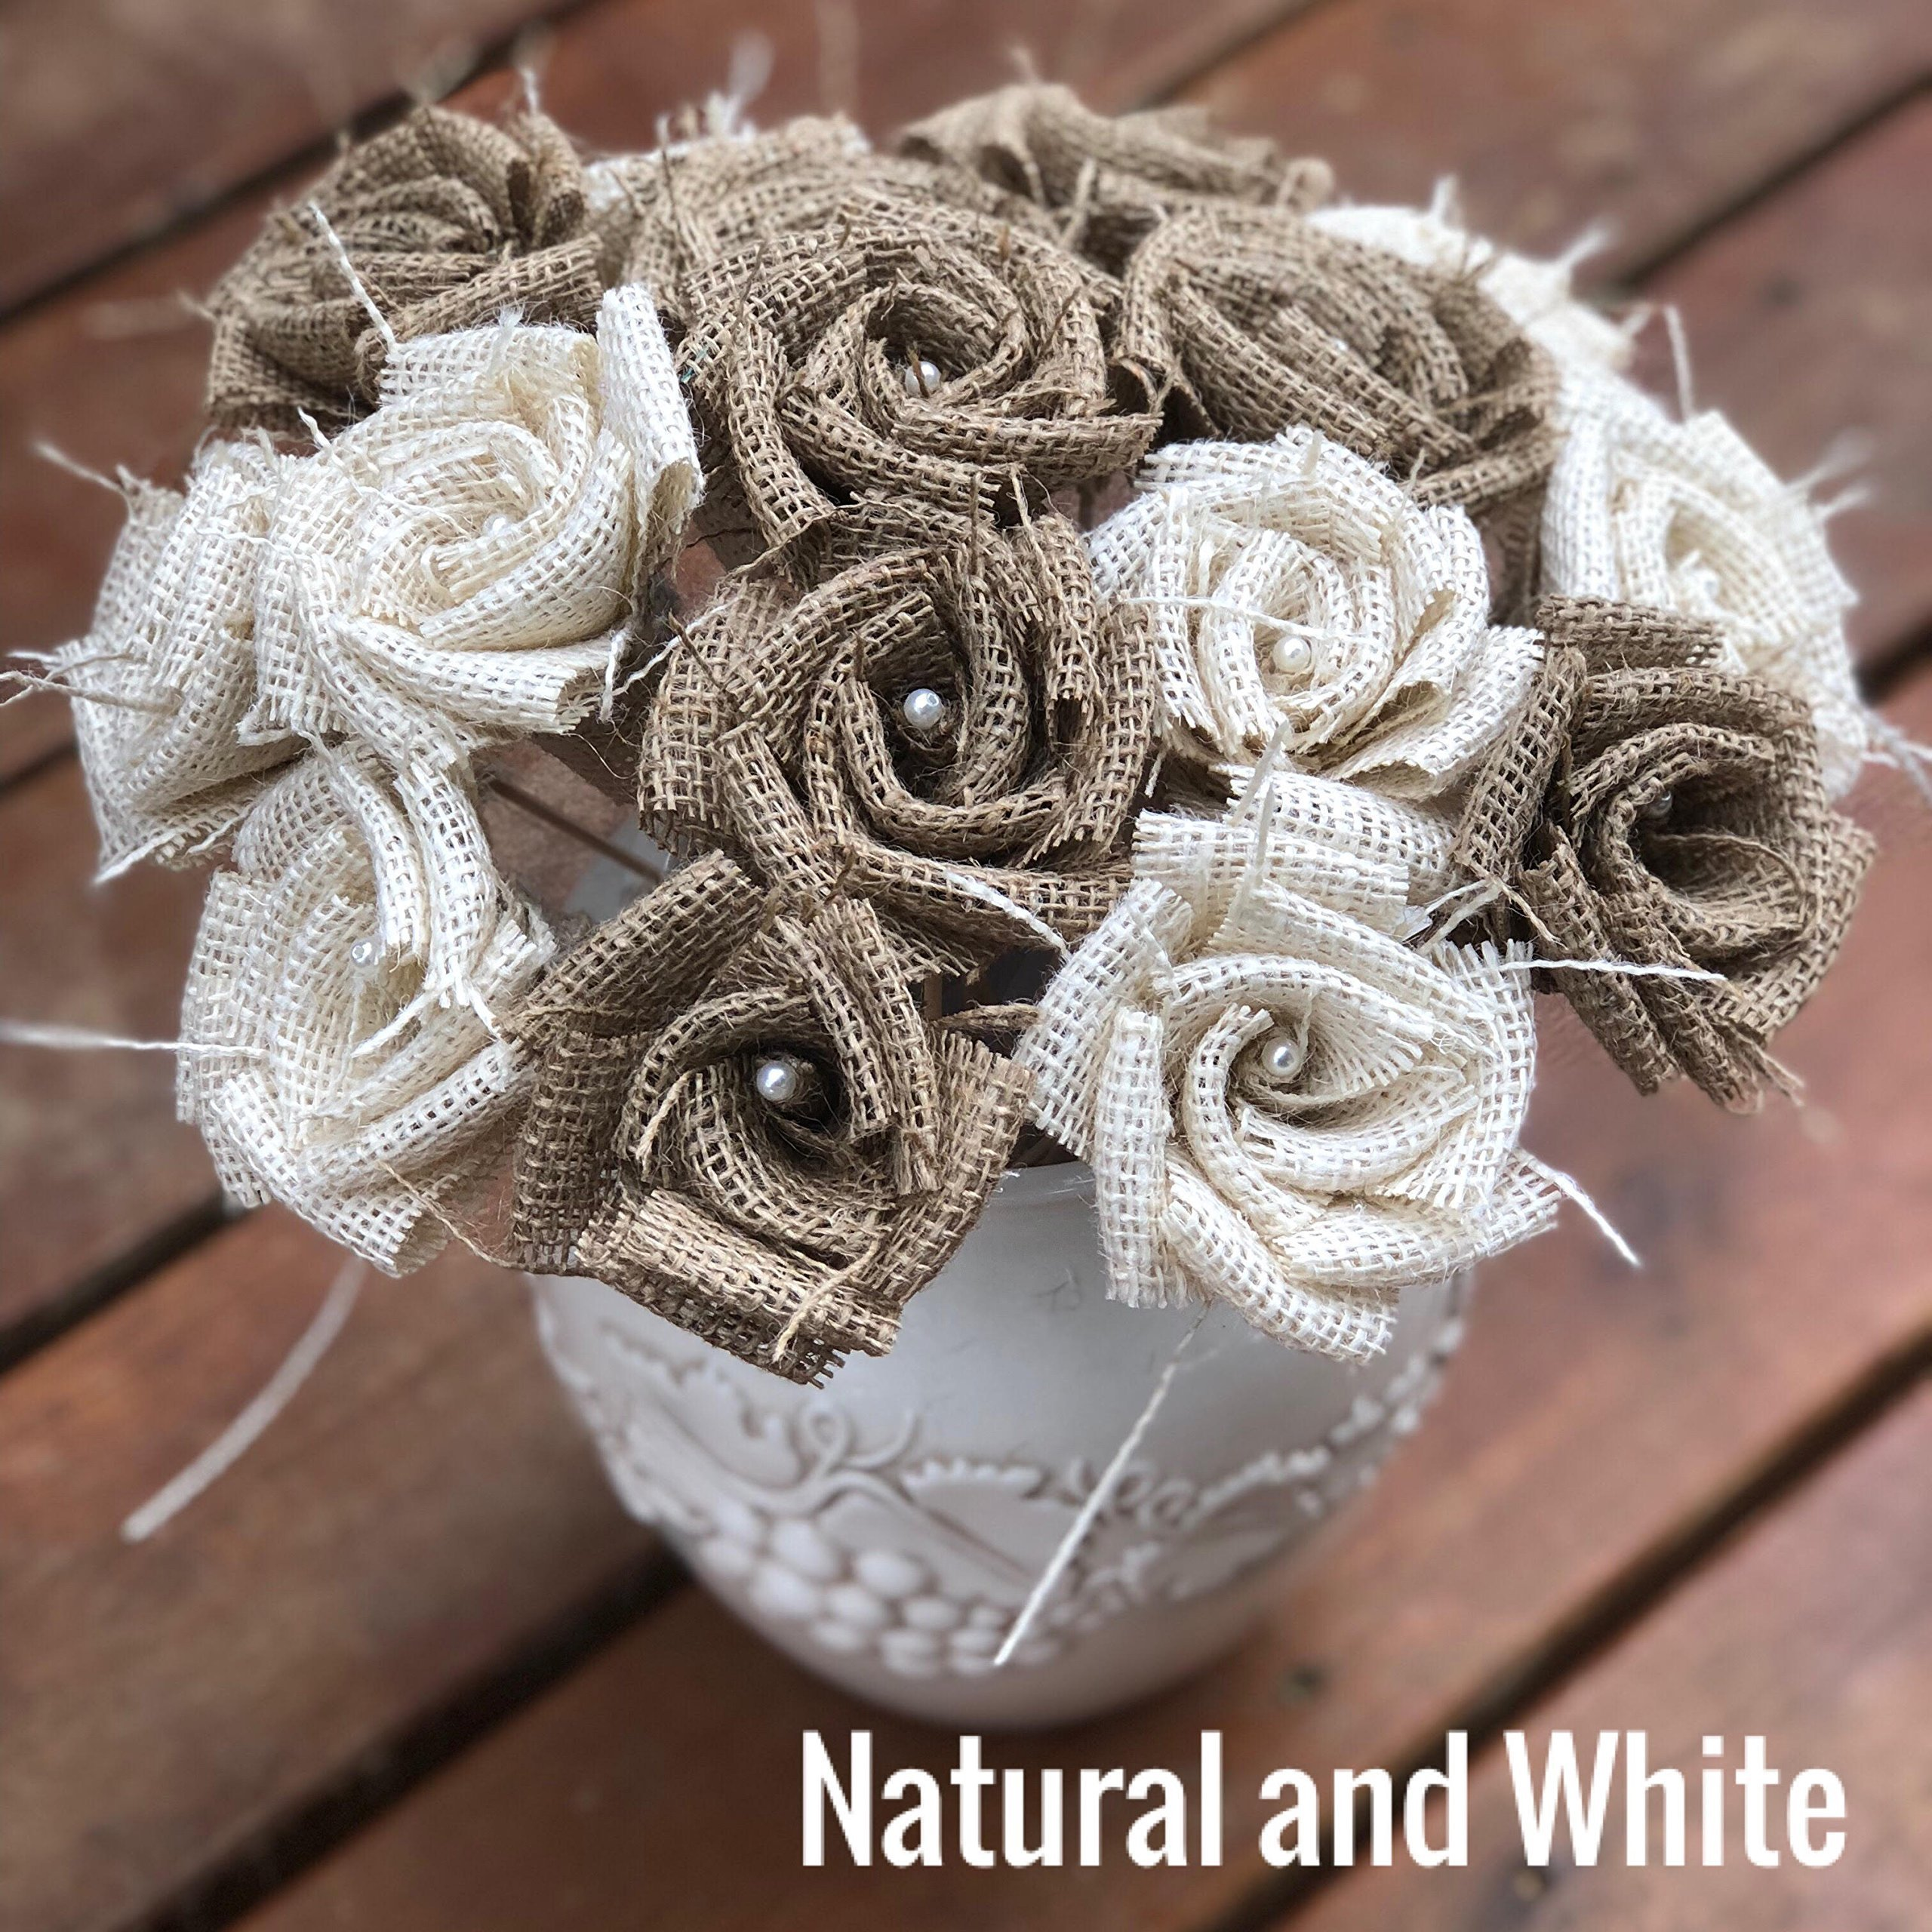 Burlap Flowers with Stem 6 white, 6 natural (12 total) Burlap Rose Flowers with Stem Wedding Decor Flowers Rustic Bouquet with Wooden Stems